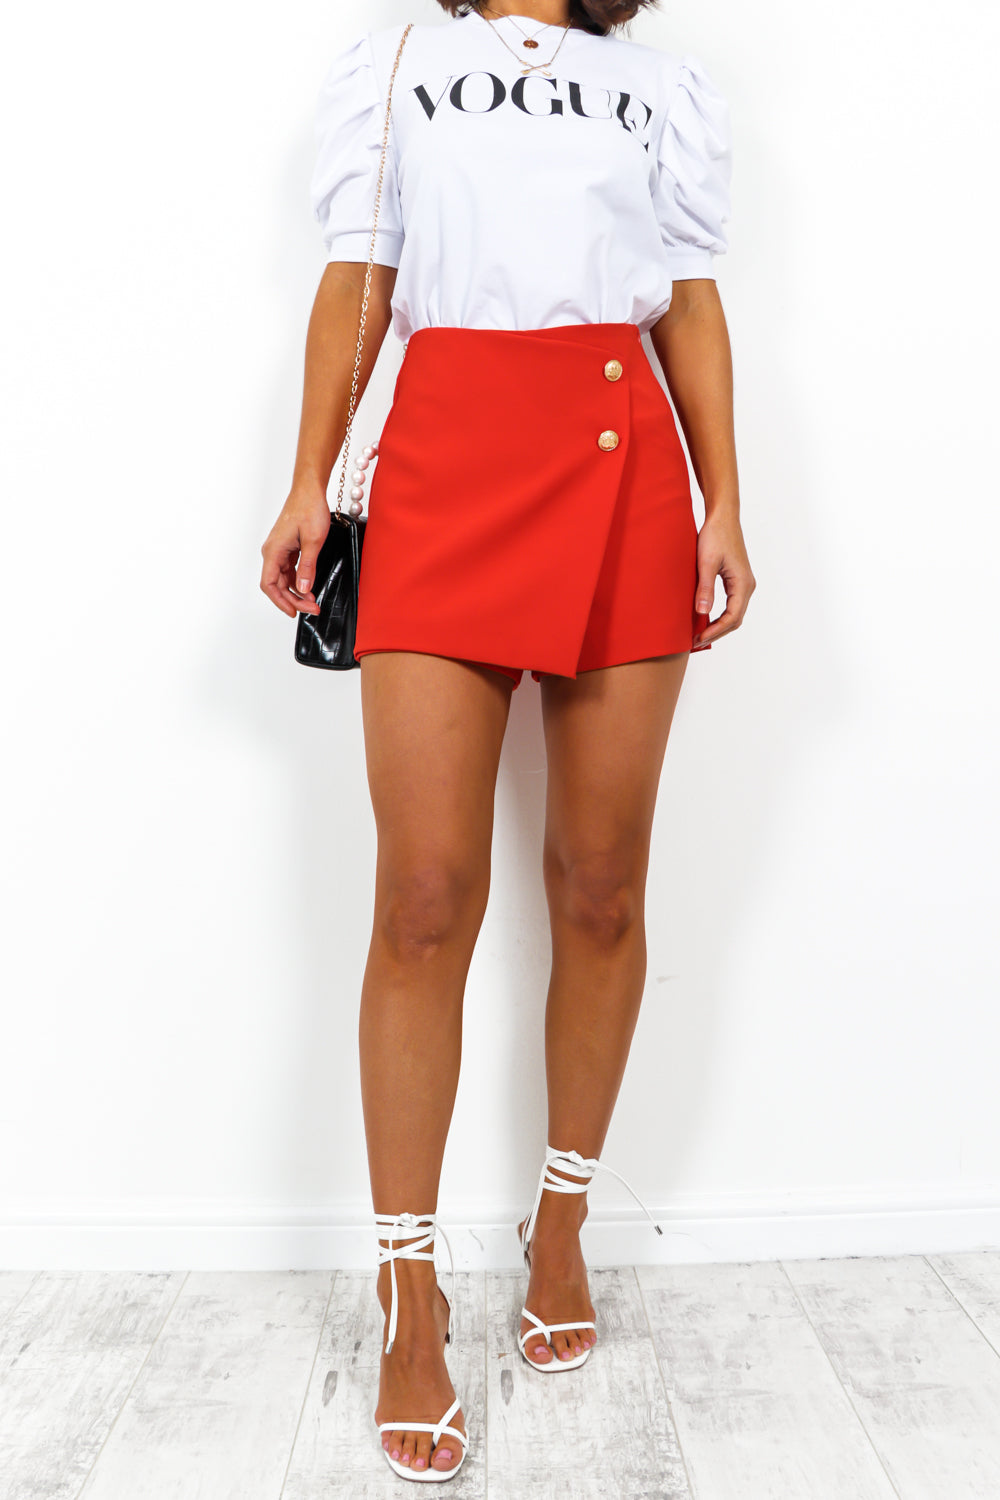 Under Wraps - Skort In RED